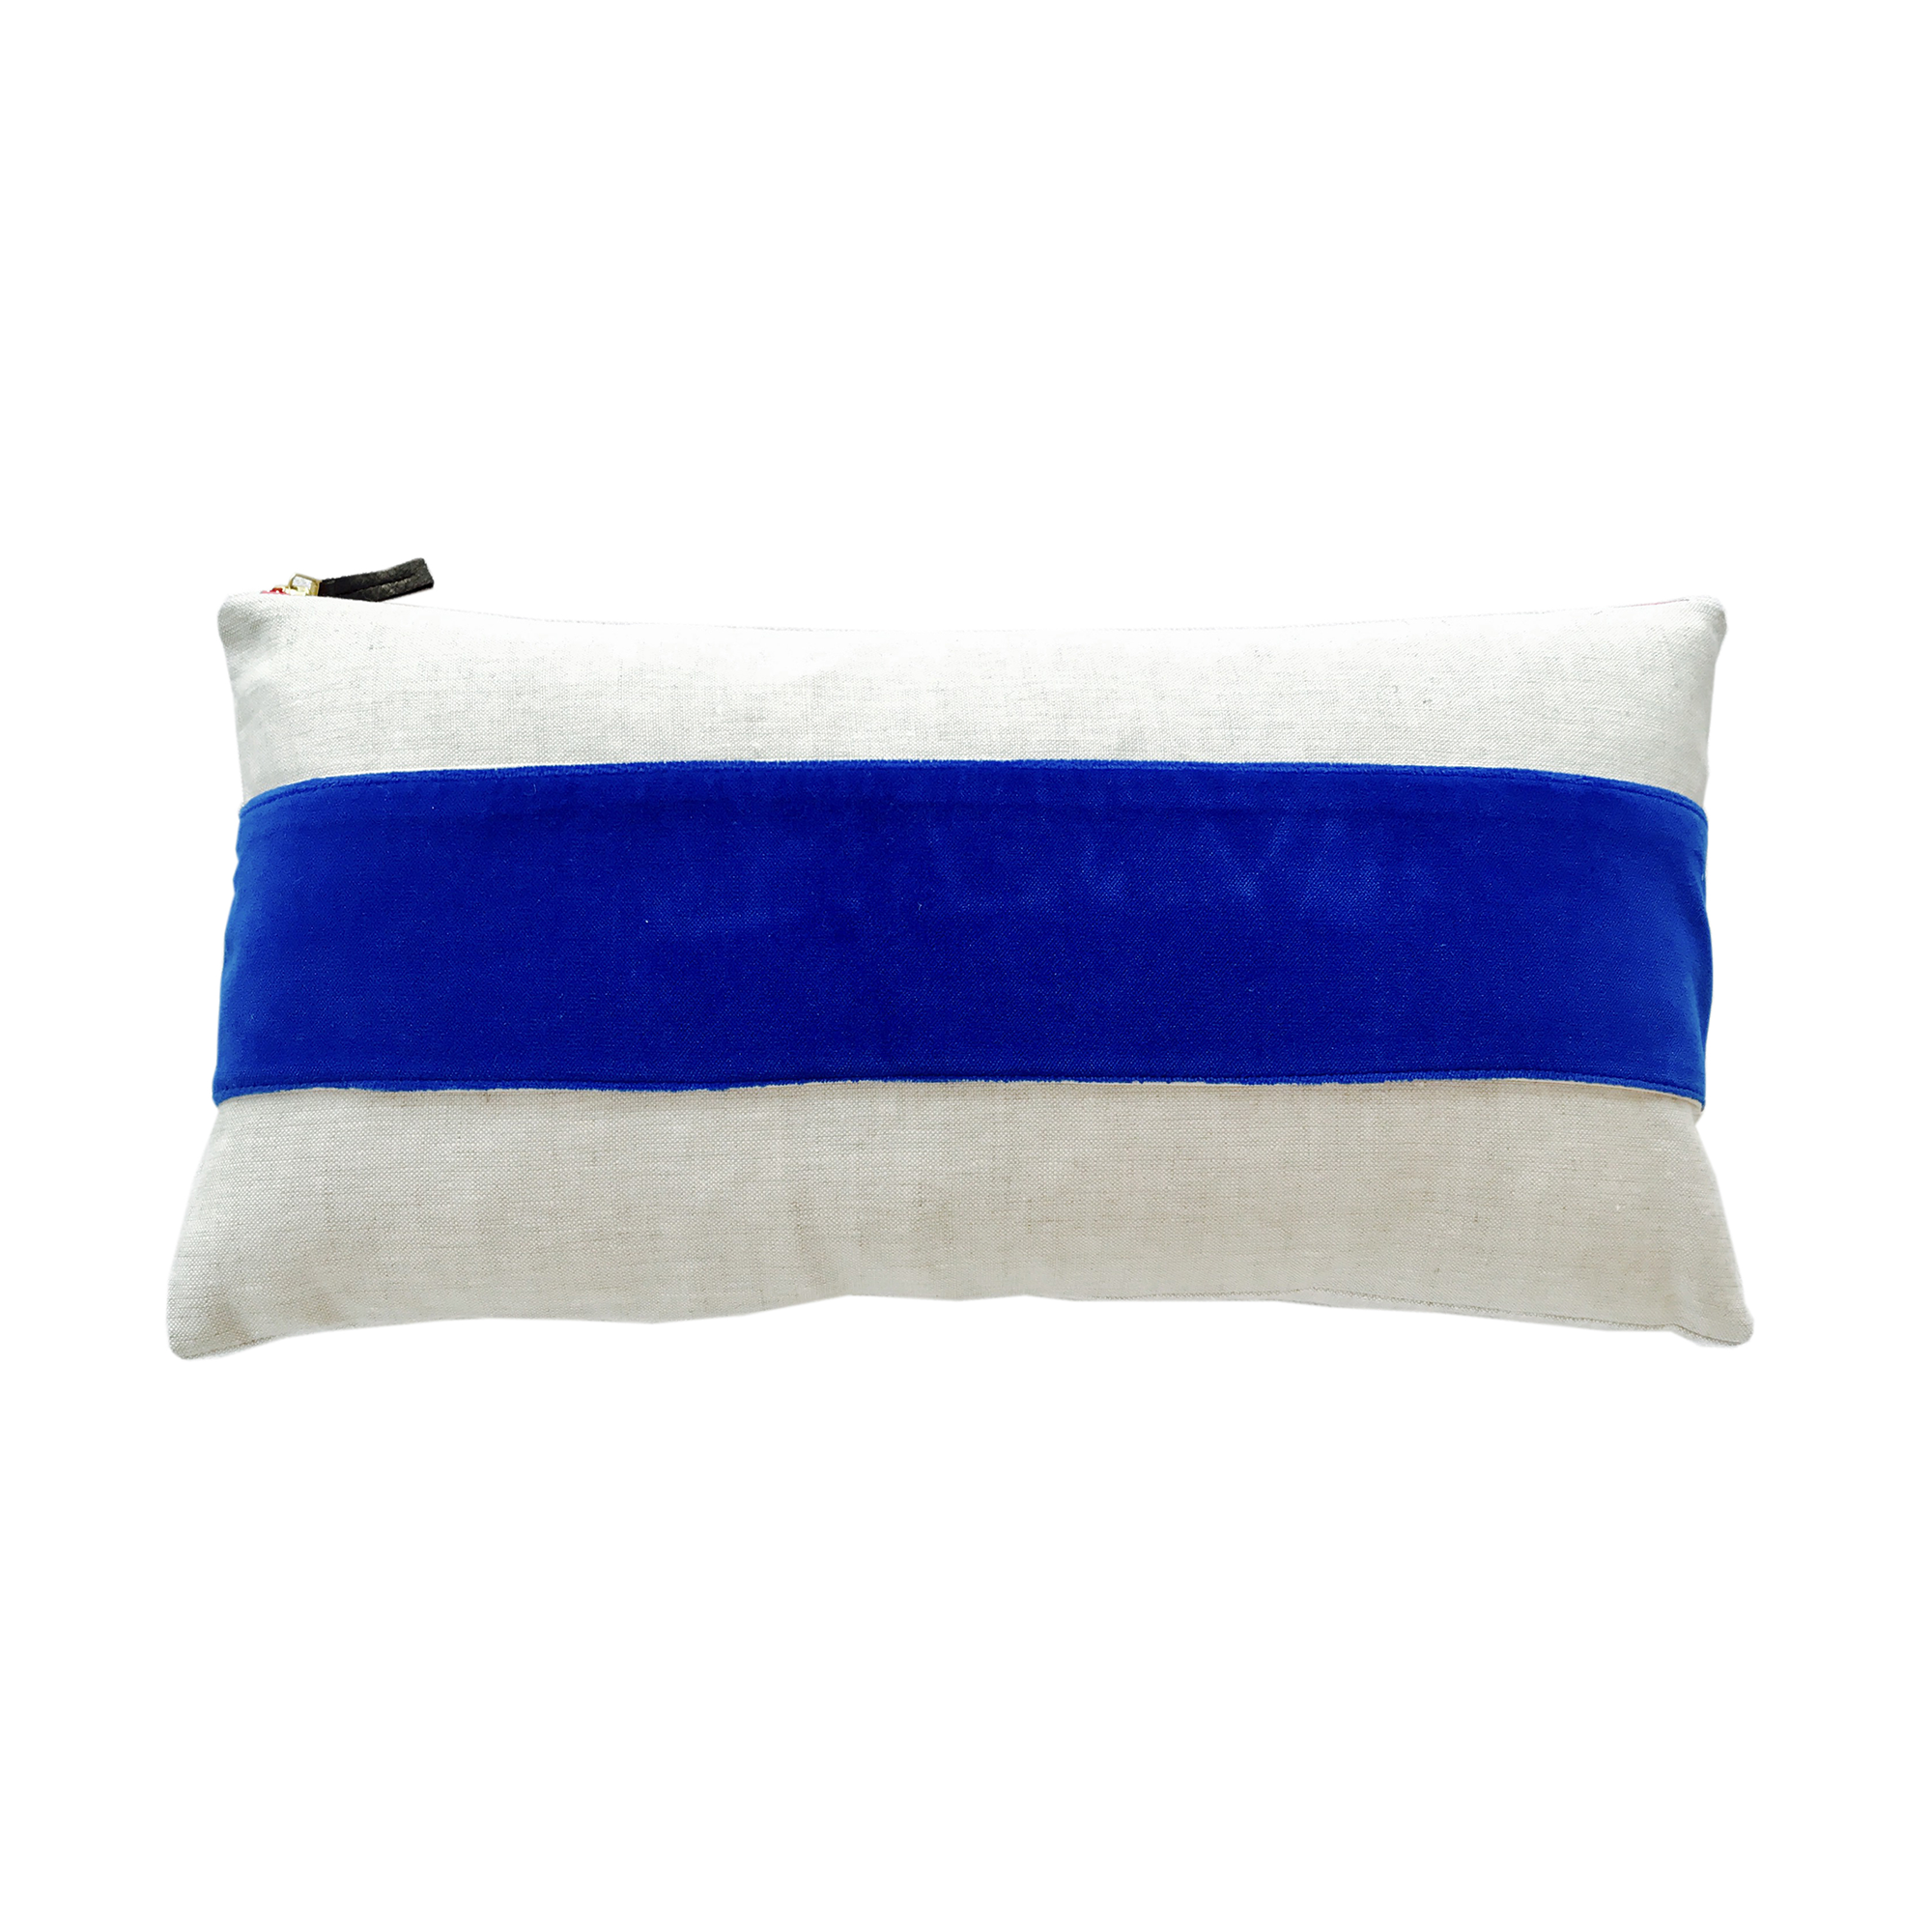 ROYAL VELVET BAND LINEN PILLOW COVER